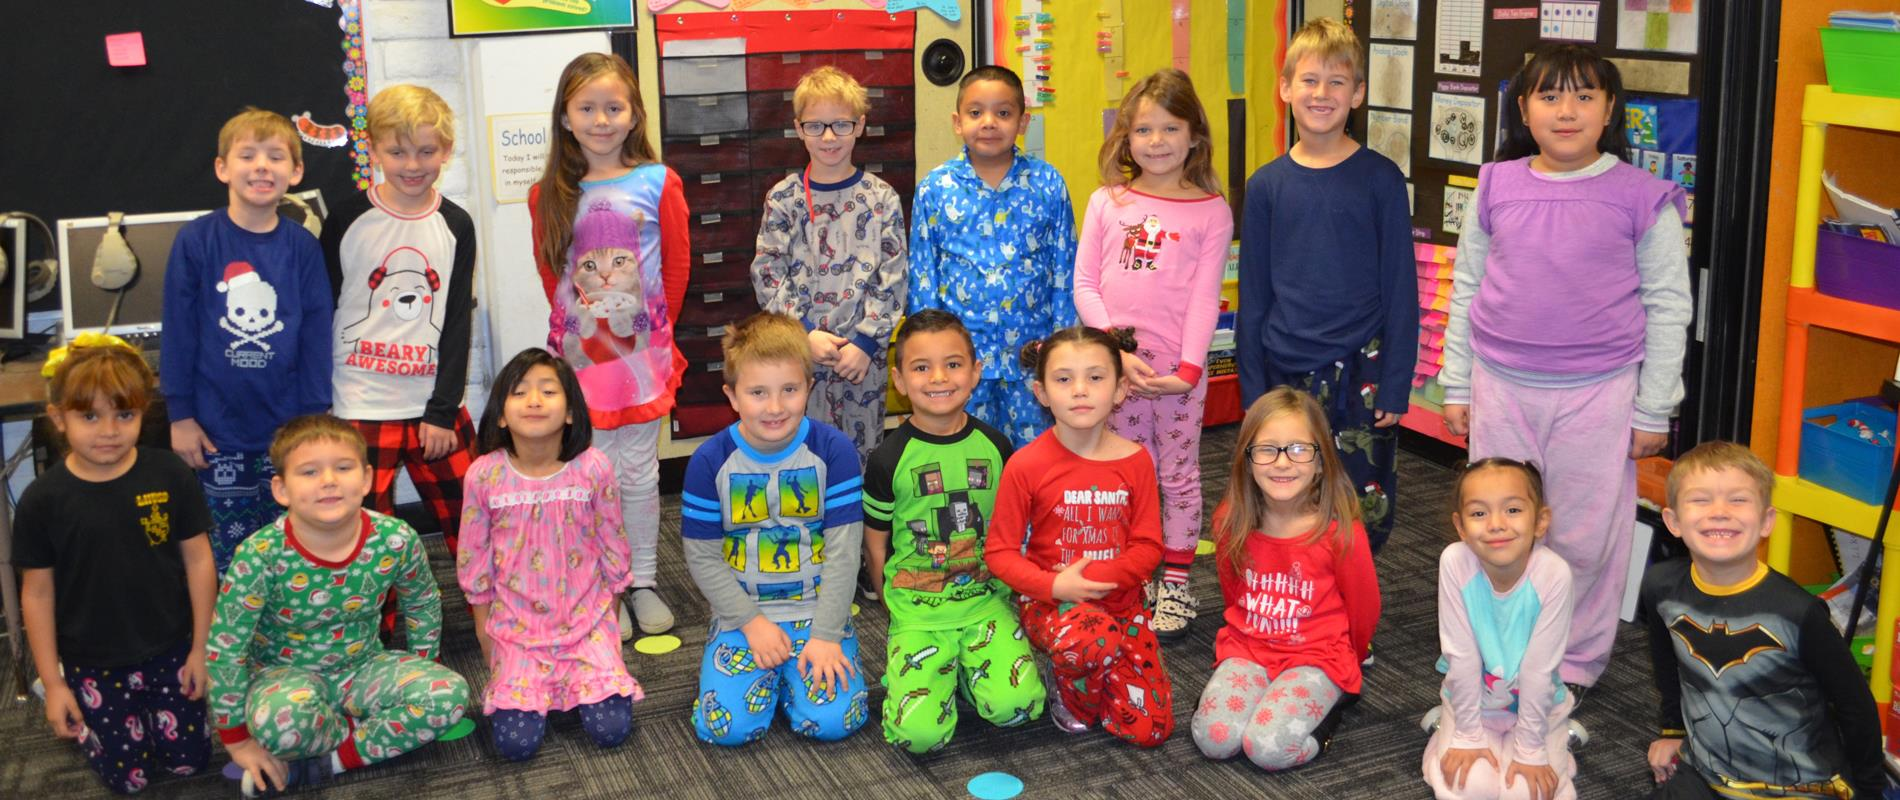 pictures of students in their pajamas for Pajama Day